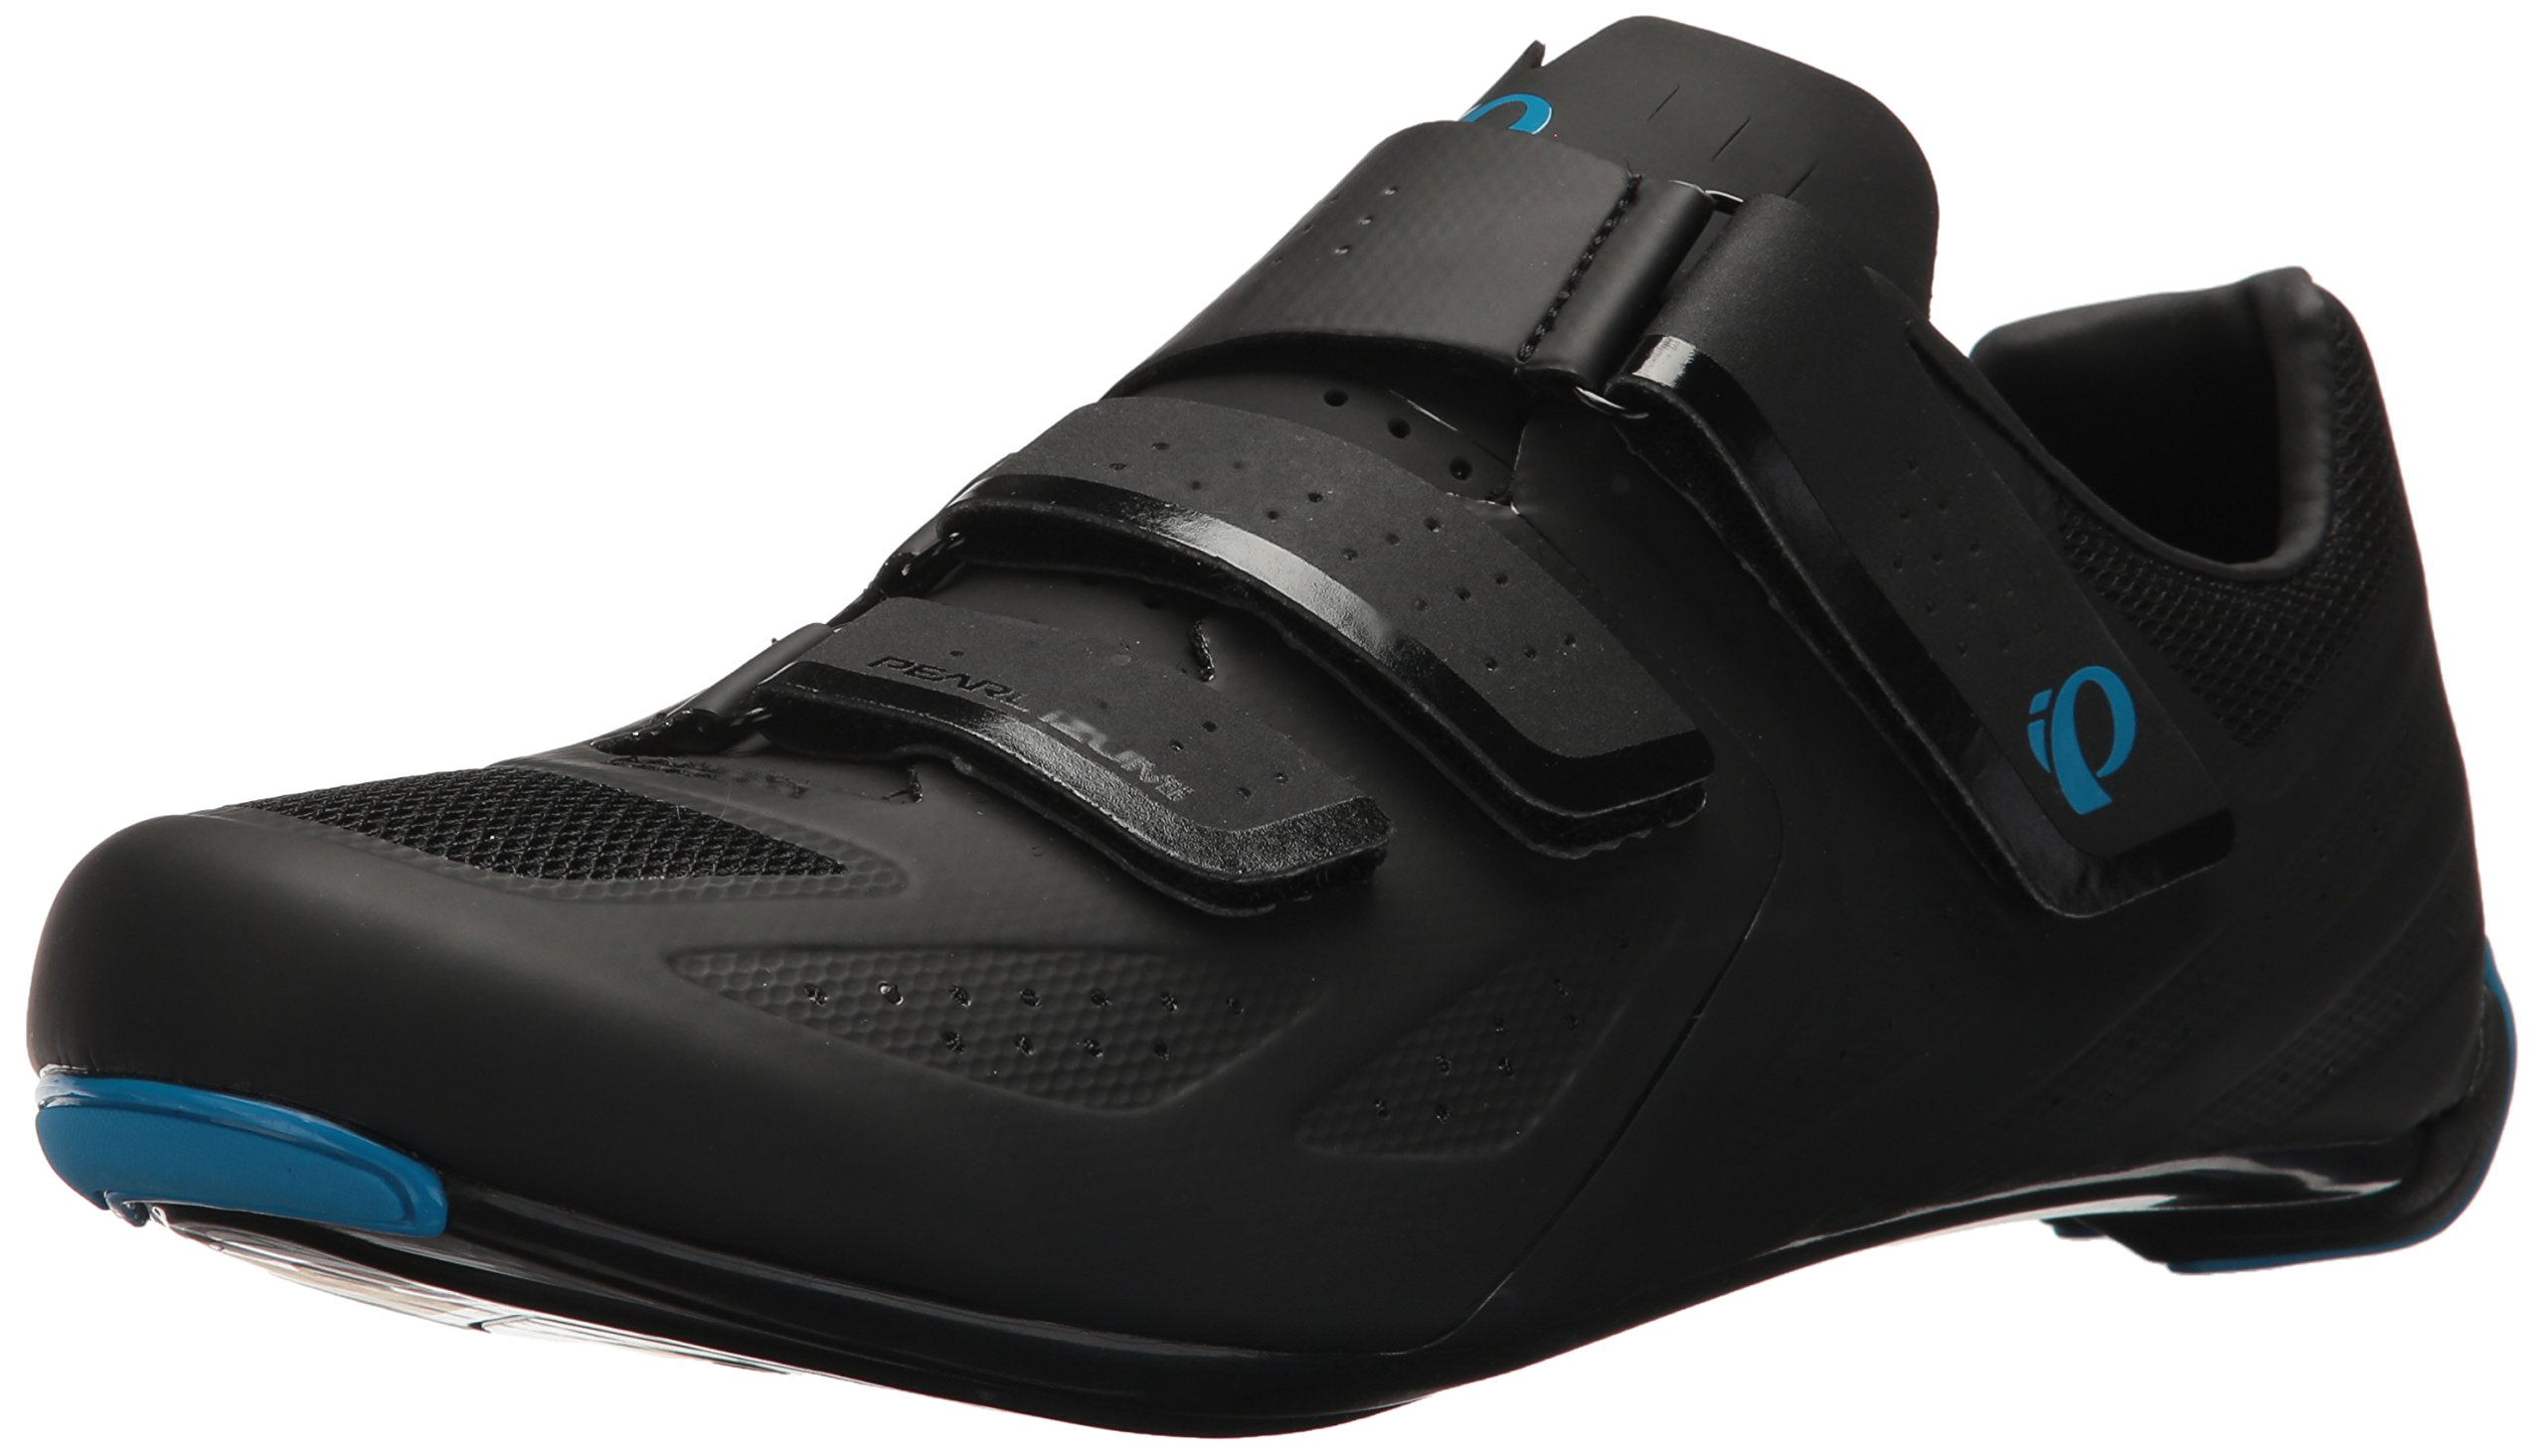 Pearl iZUMi Men's Select Road v5 Studio Cycling Shoe, Black/Black, 52.0 M EU (16.3 US) by Pearl iZUMi